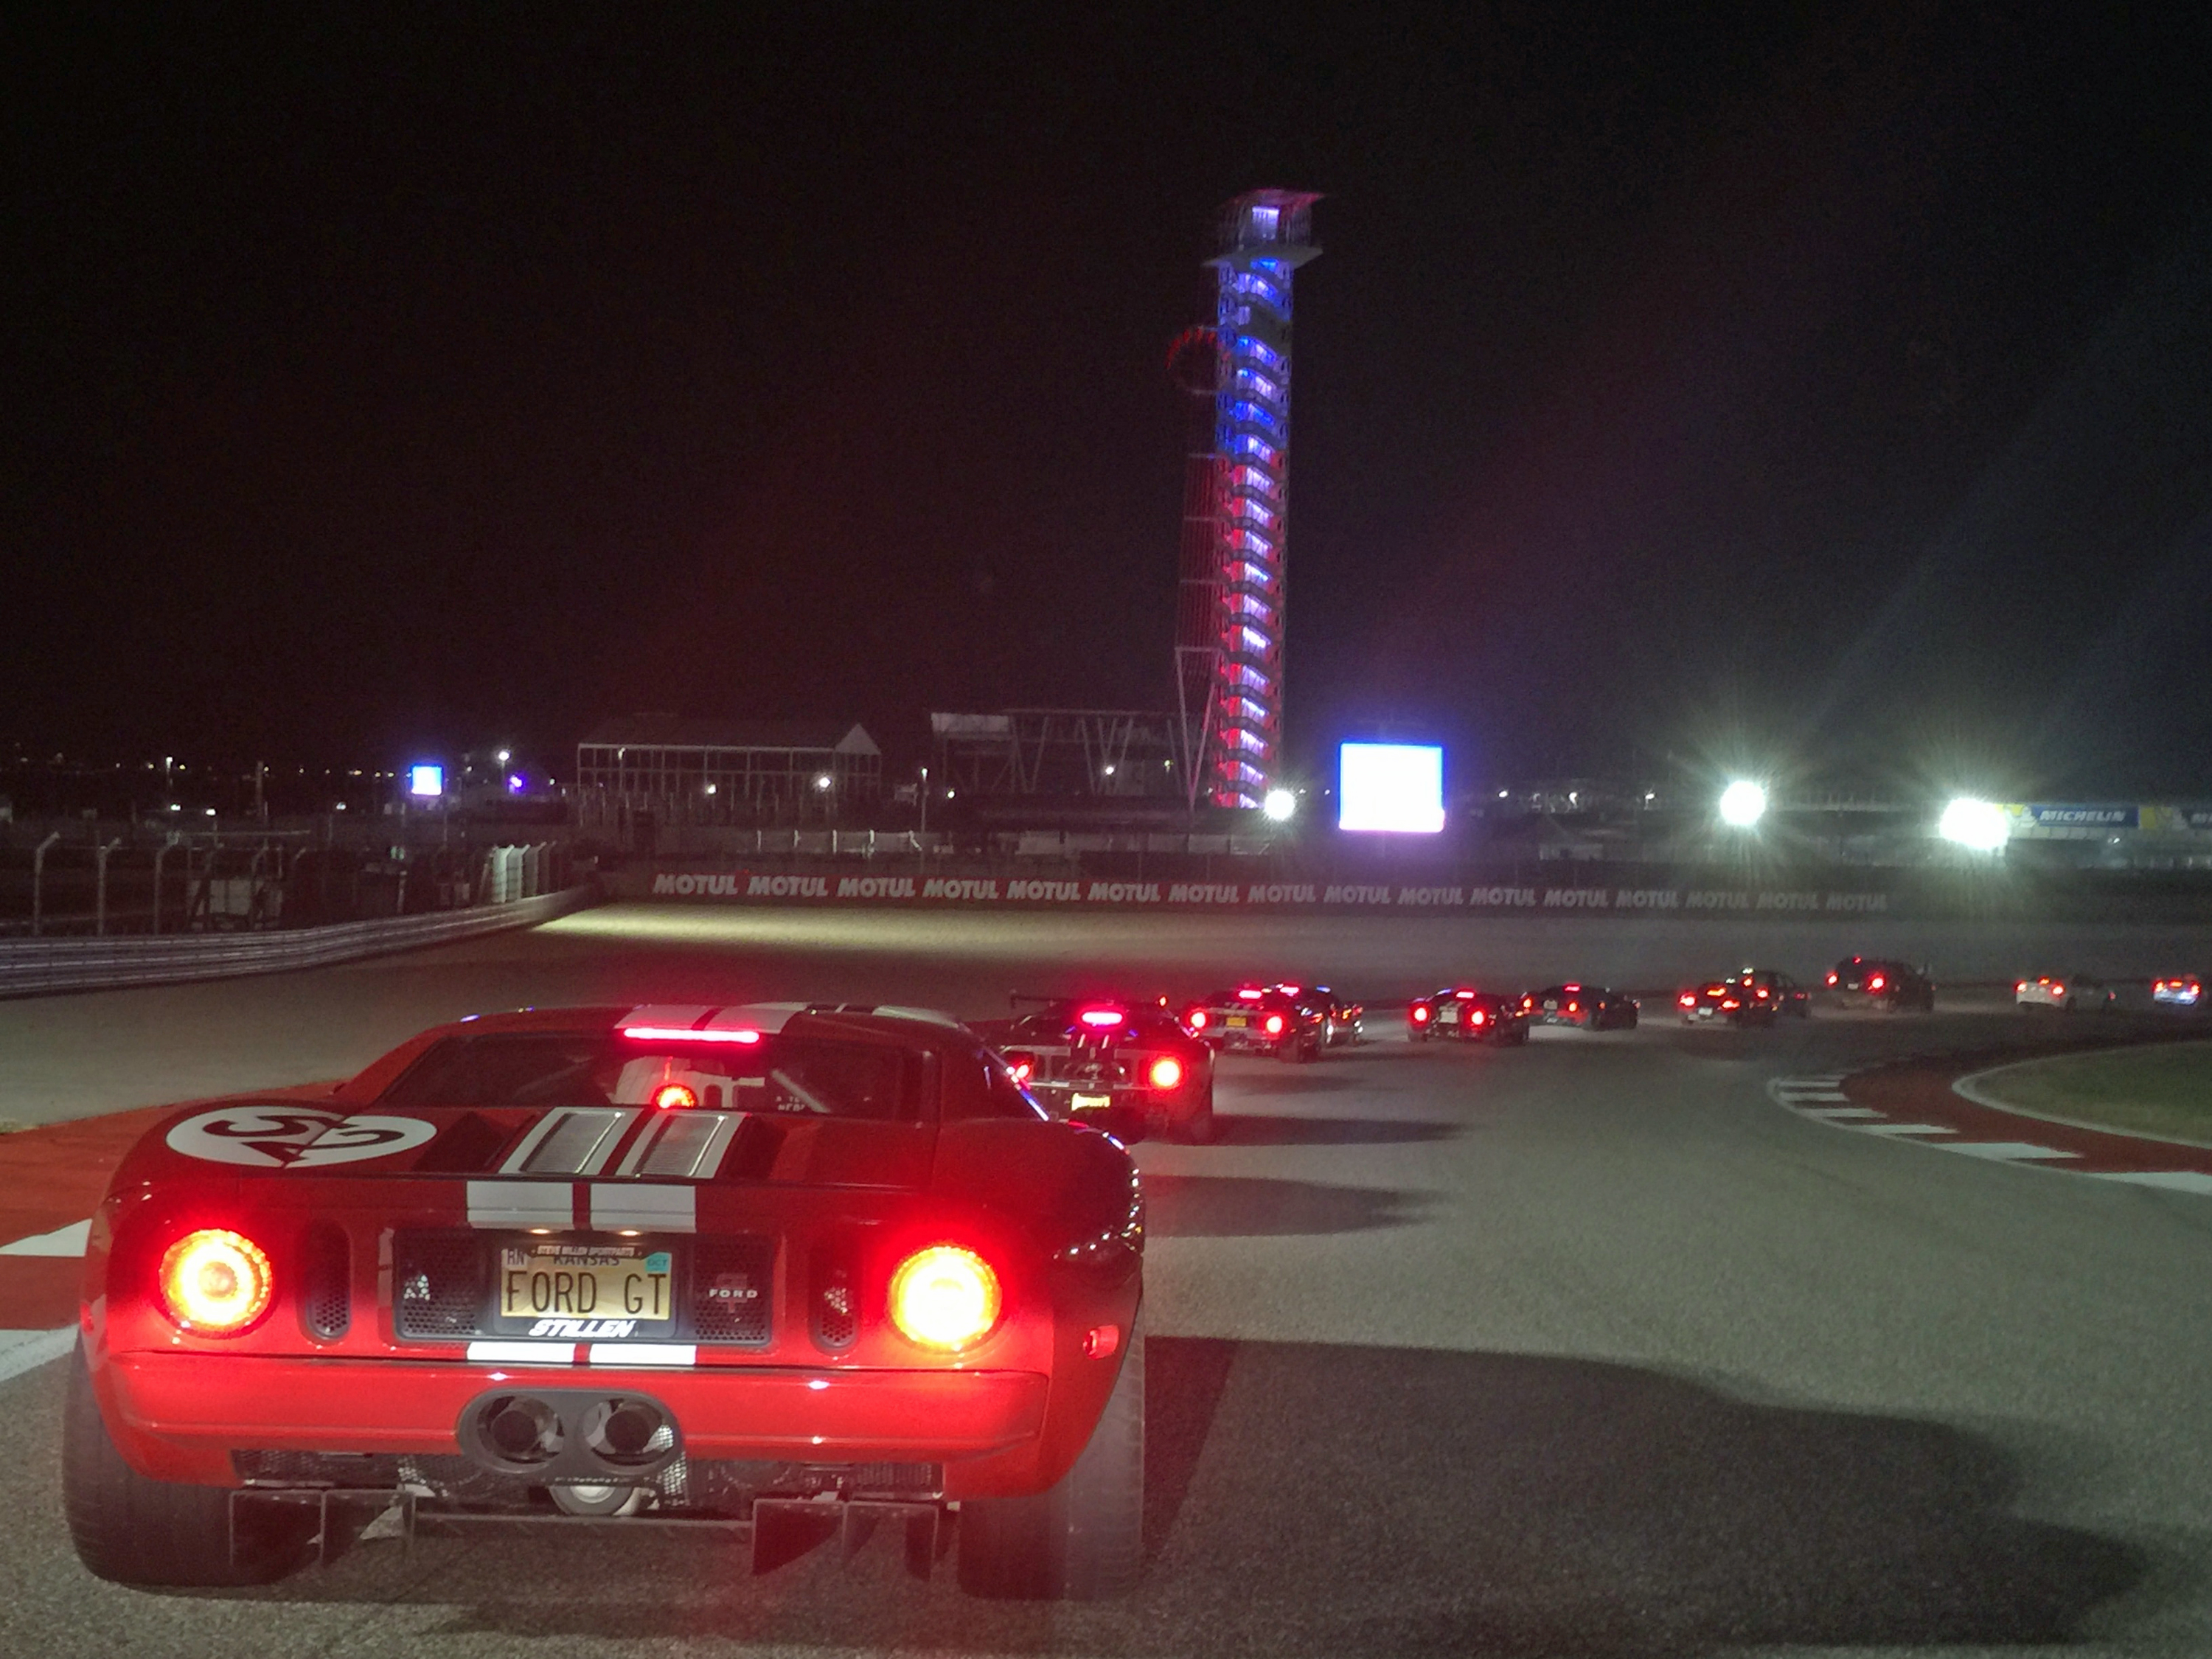 Ford GT Owners Rally 11 COTA Race Track